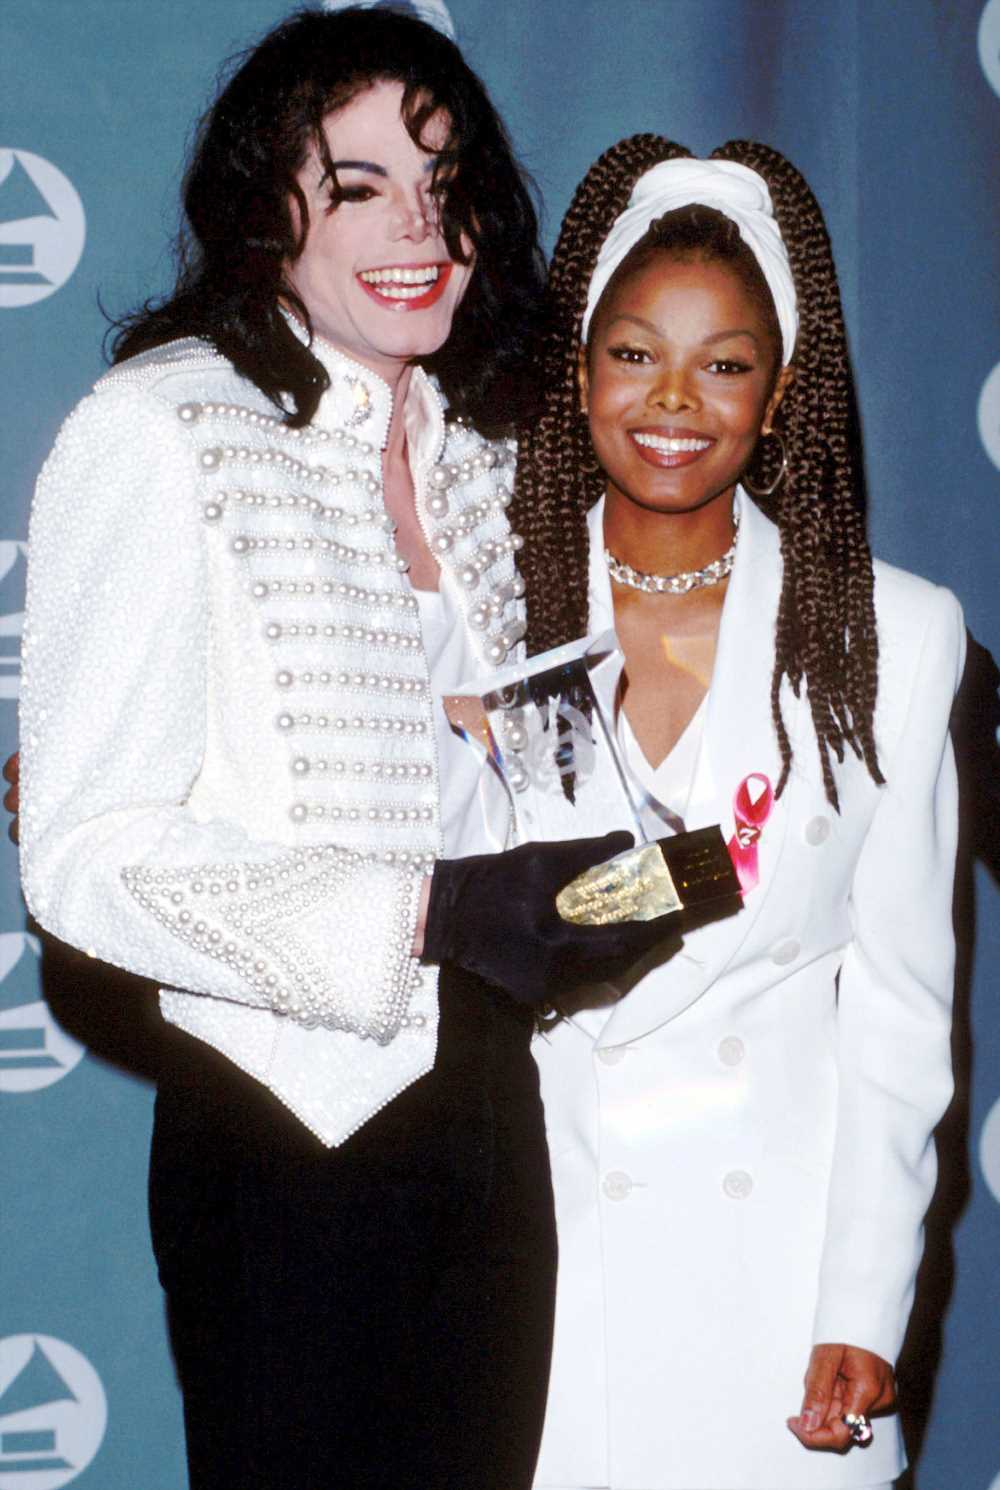 Janet Jackson Says Brother Michael's Legacy 'Will Continue' Ahead of His 10-Year Death Anniversary